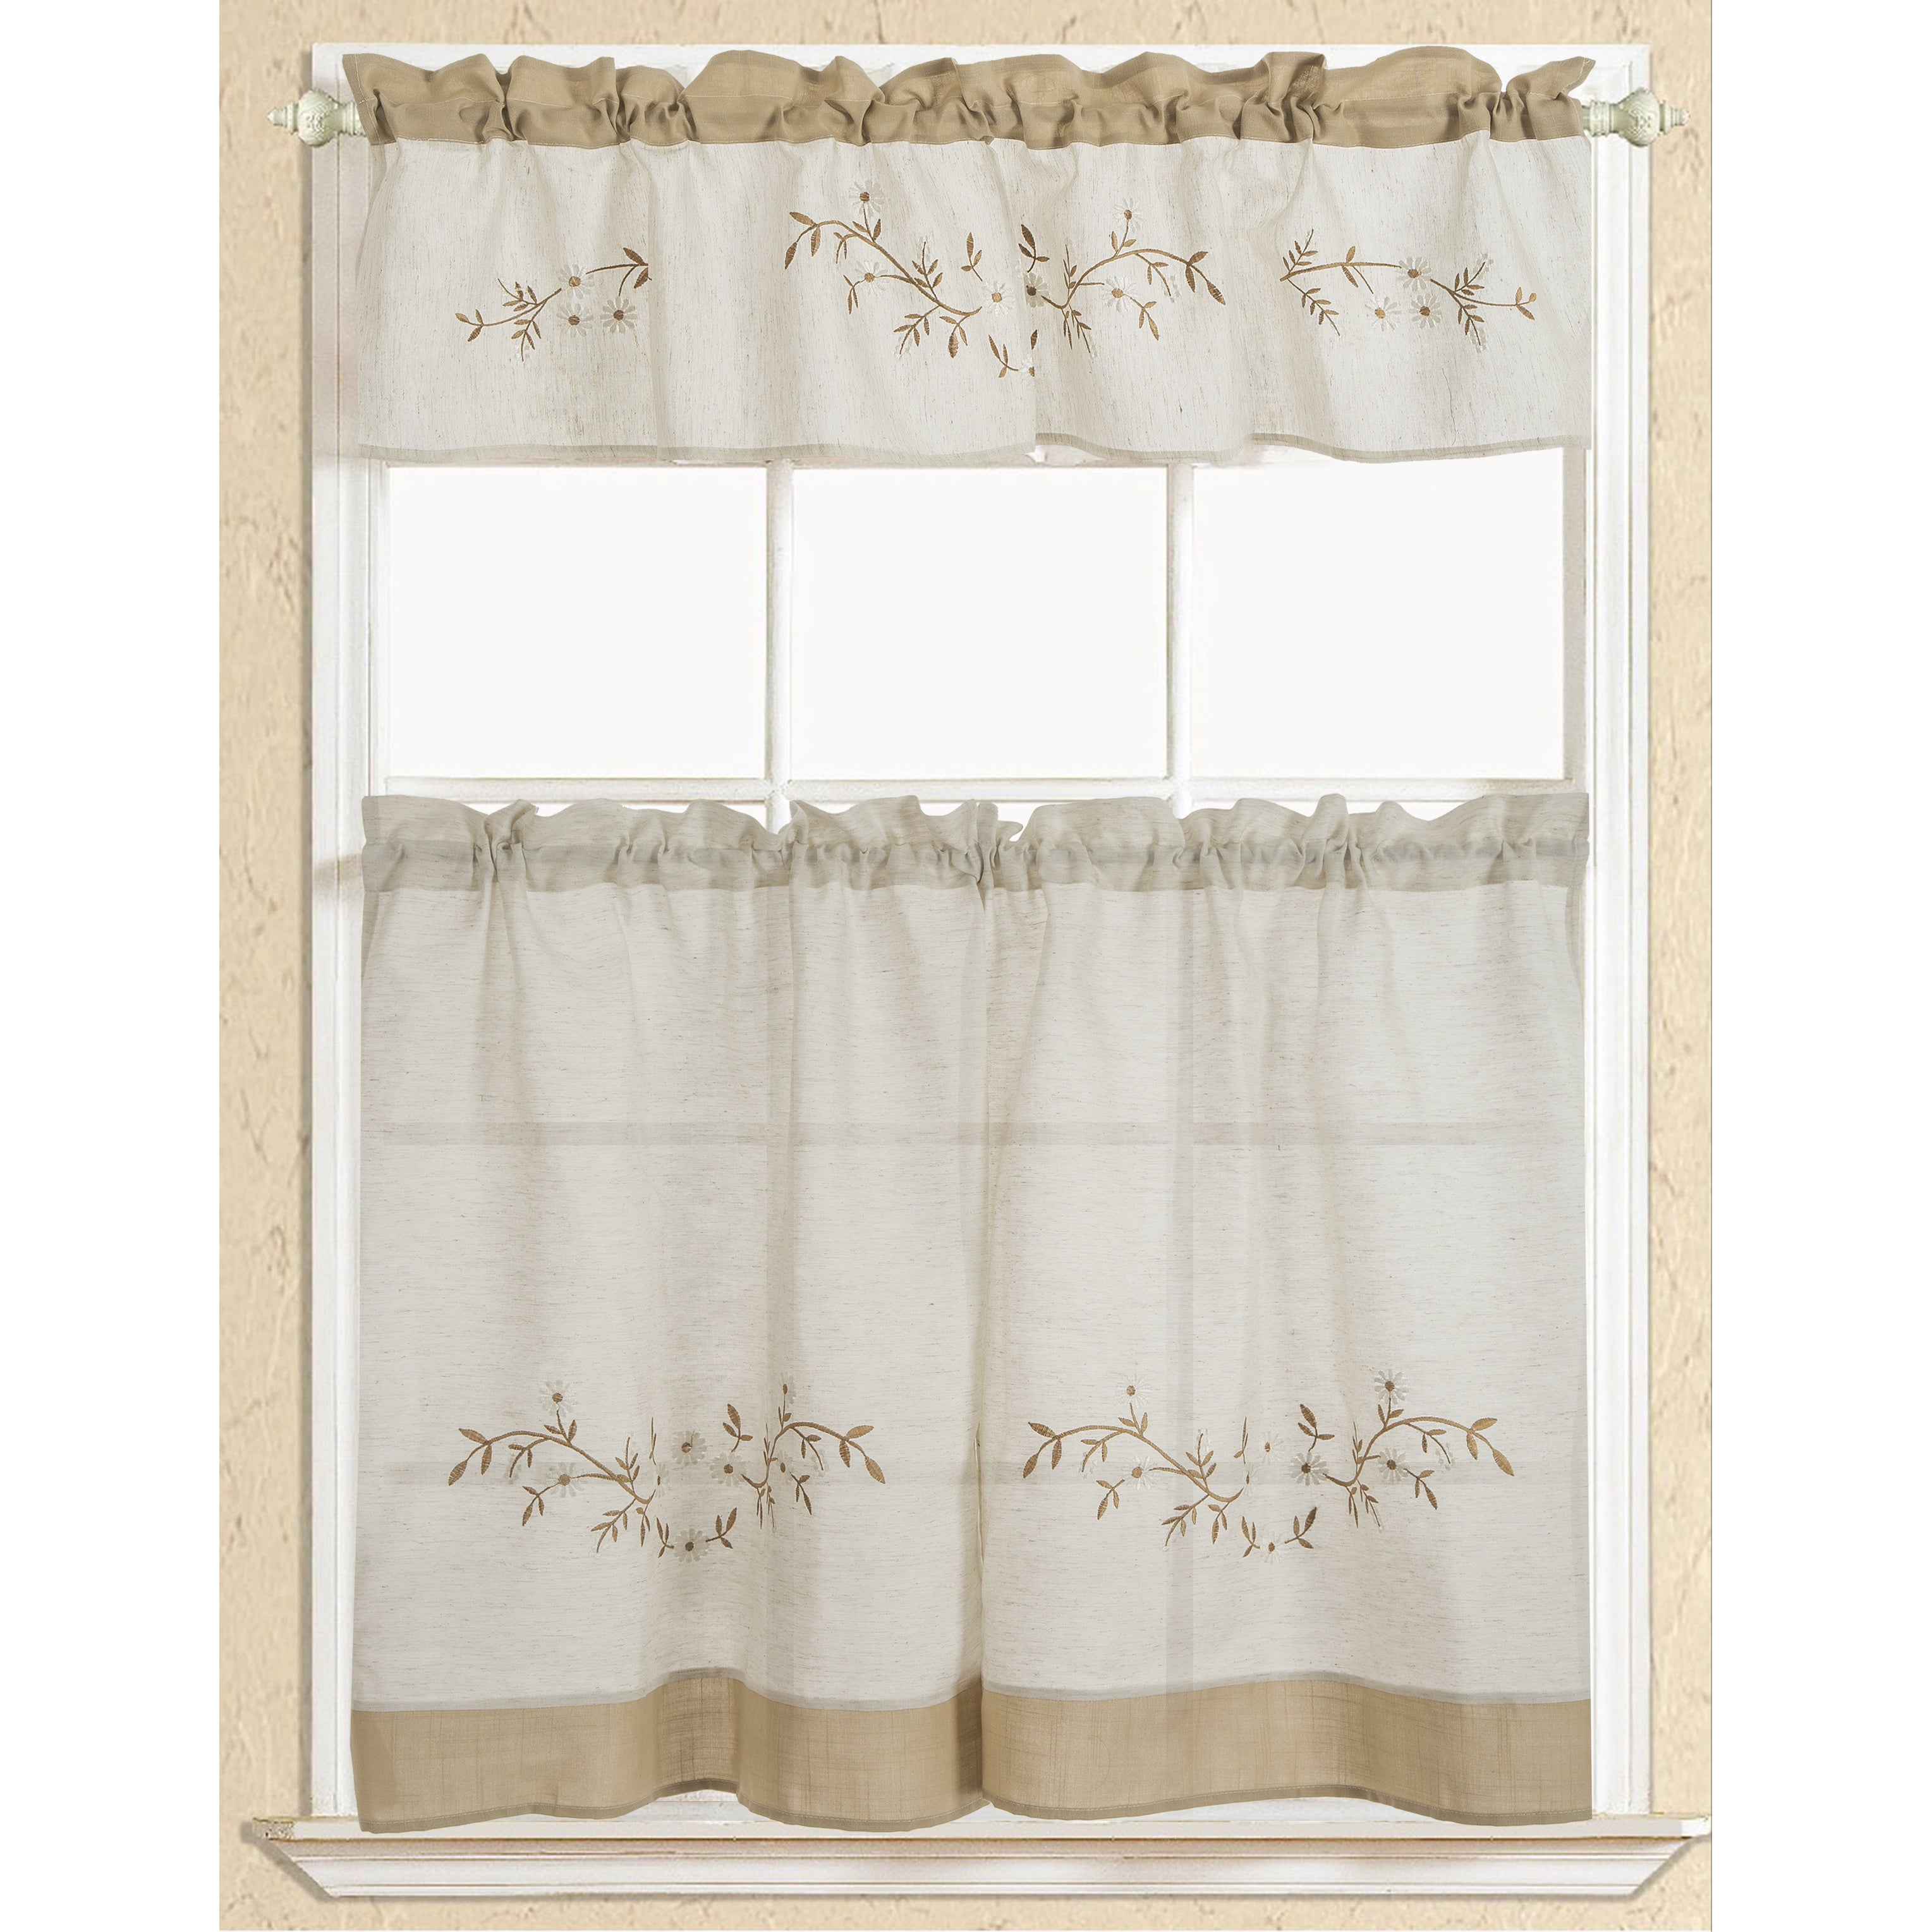 RT Designers Collection Rustic Embroidered Floral Tier an...